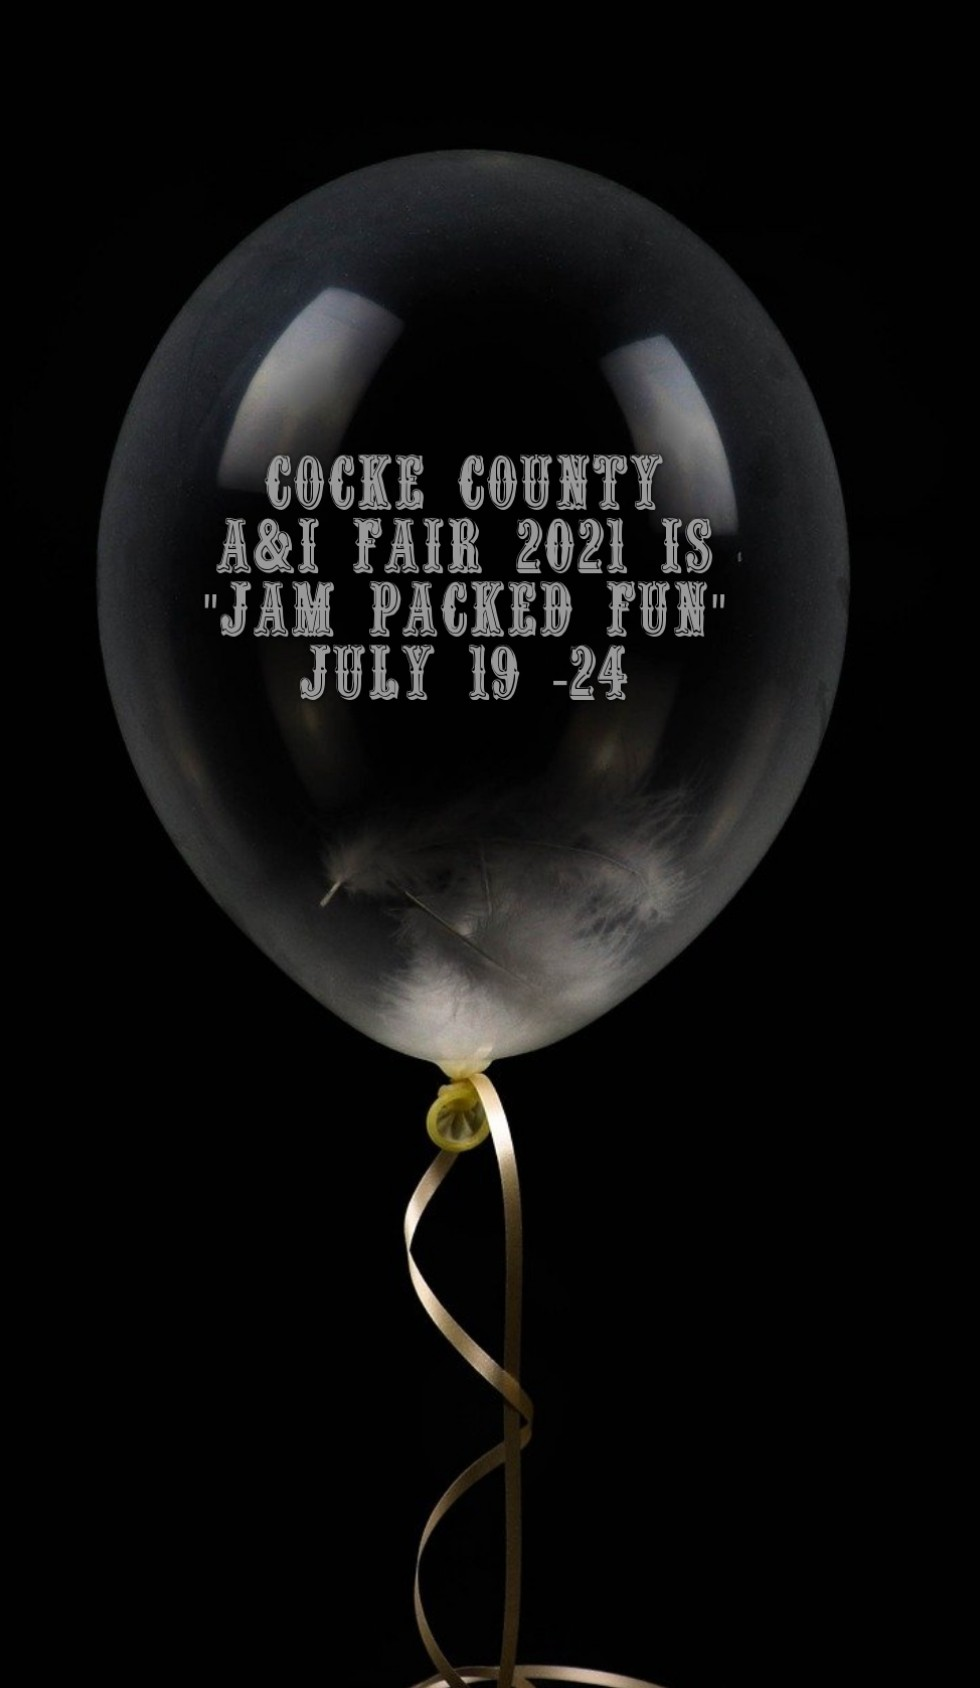 Cocke County A&I Fair